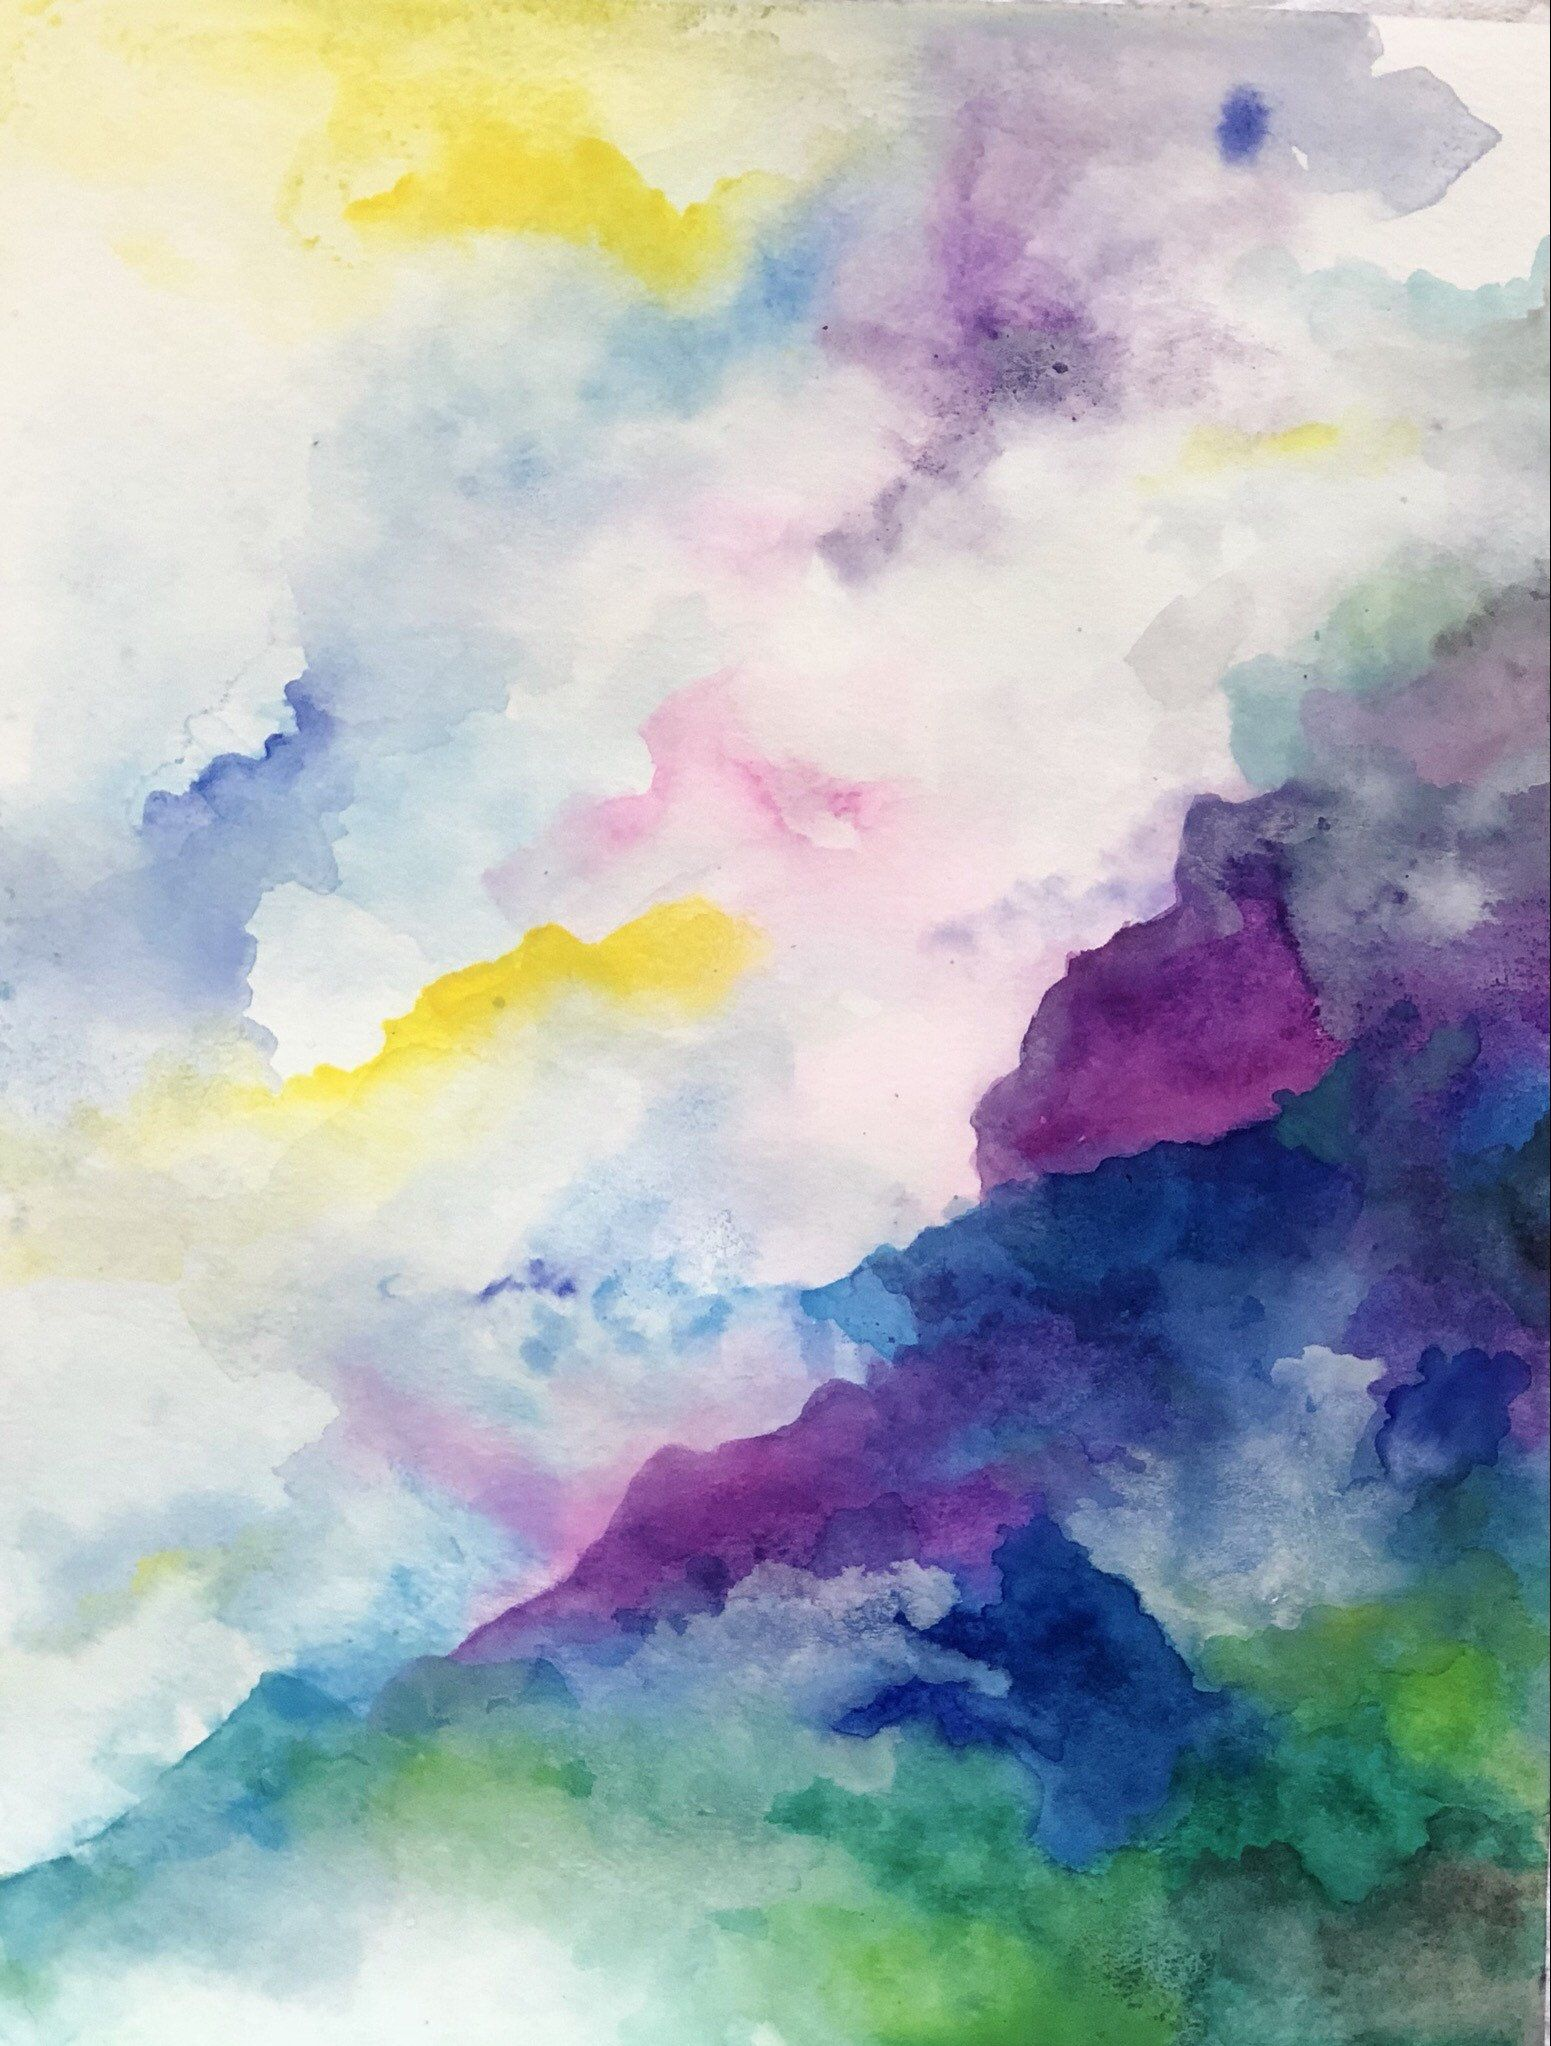 Bright Original Affordable Watercolor Painting Abstract Unique